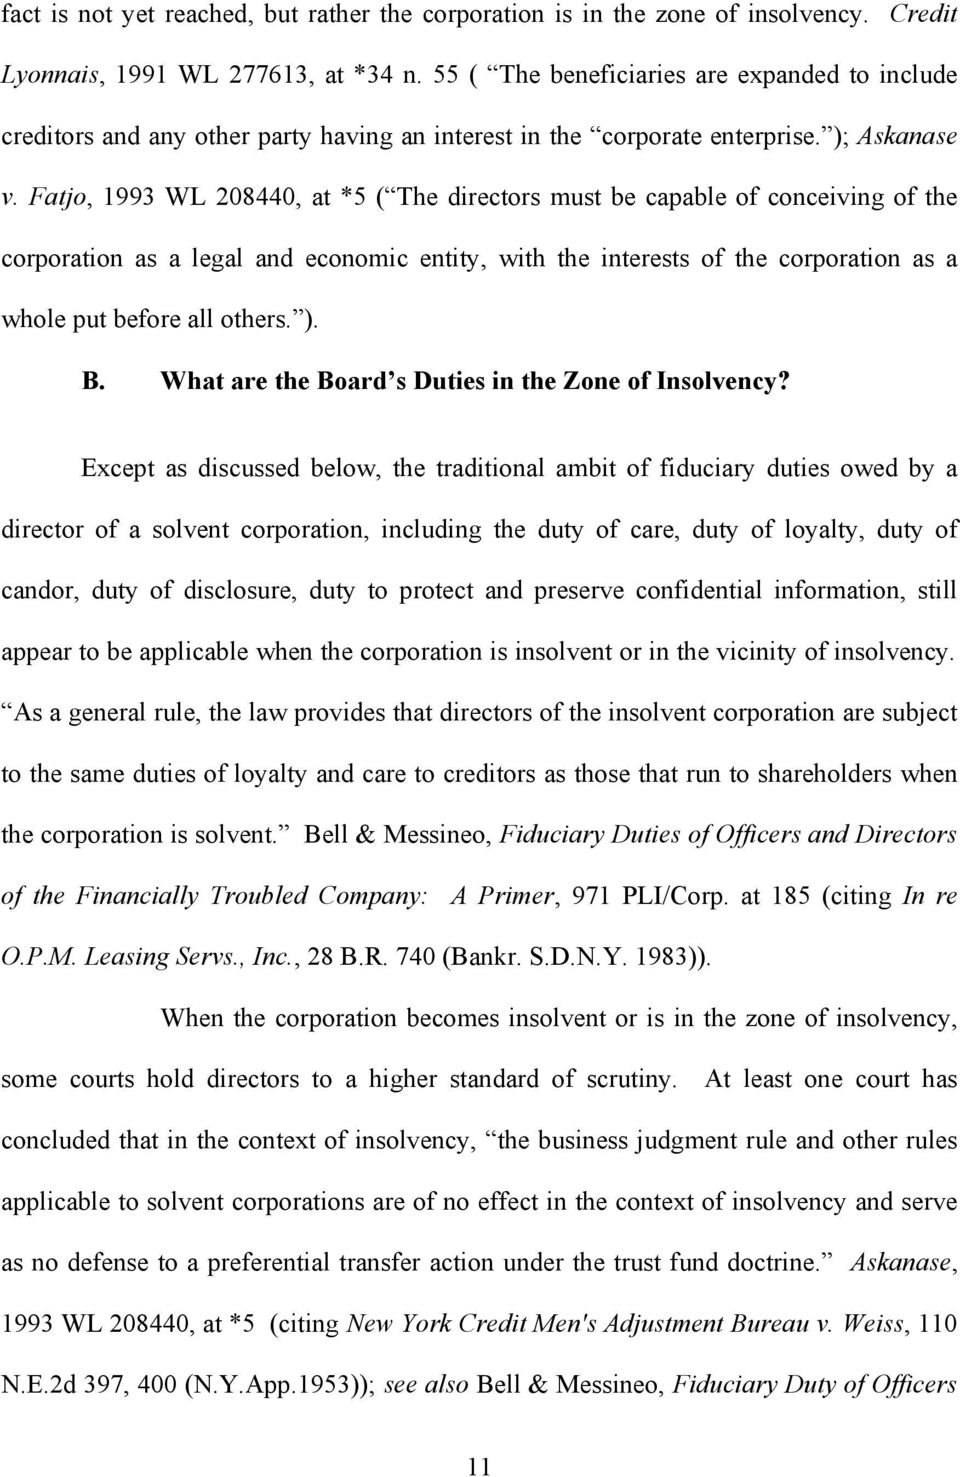 Fatjo, 1993 WL 208440, at *5 ( The directors must be capable of conceiving of the corporation as a legal and economic entity, with the interests of the corporation as a whole put before all others. ).